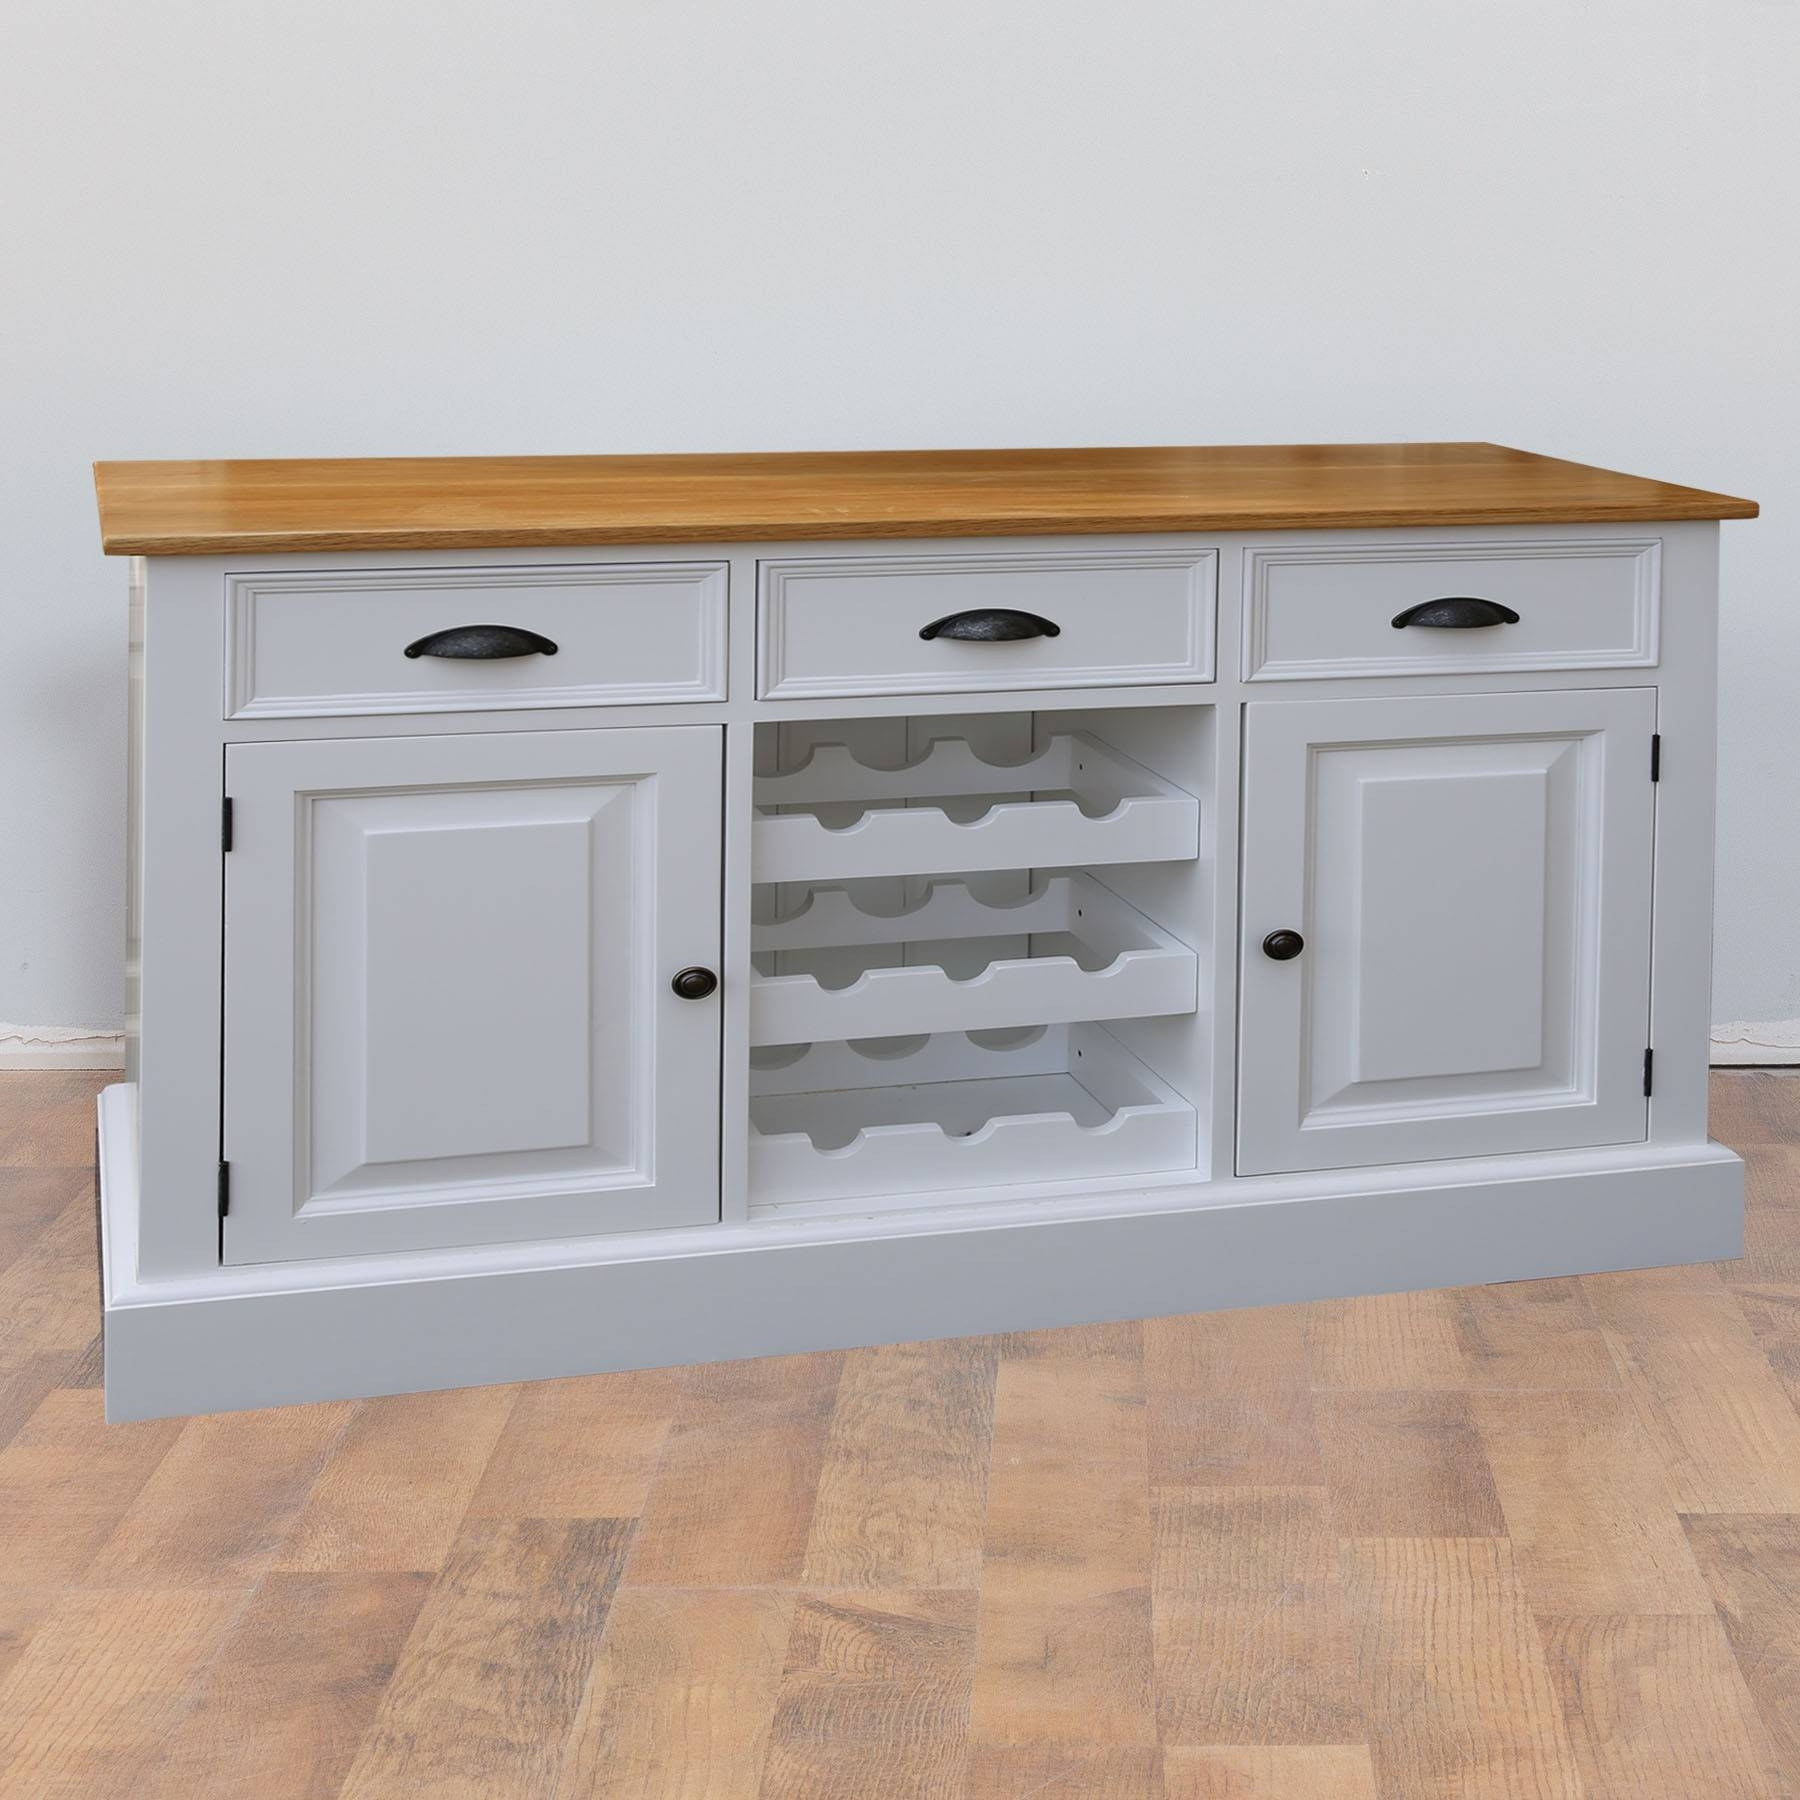 Oak Sideboards With Wine Rack | Mpfmpf Almirah, Beds Throughout White Sideboard With Wine Rack (View 3 of 20)